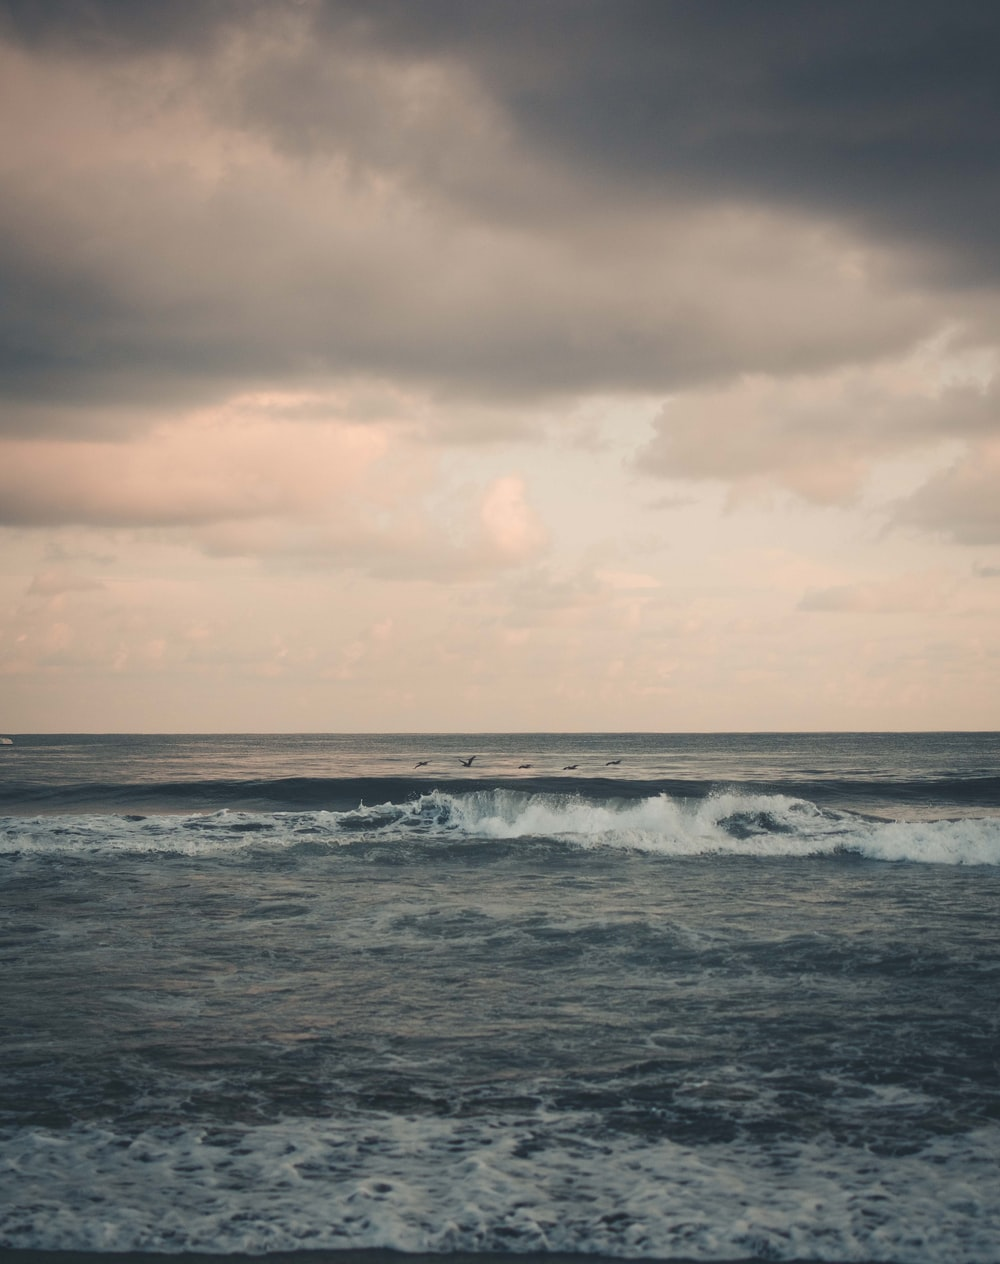 sea waves under cloudy sky during daytime